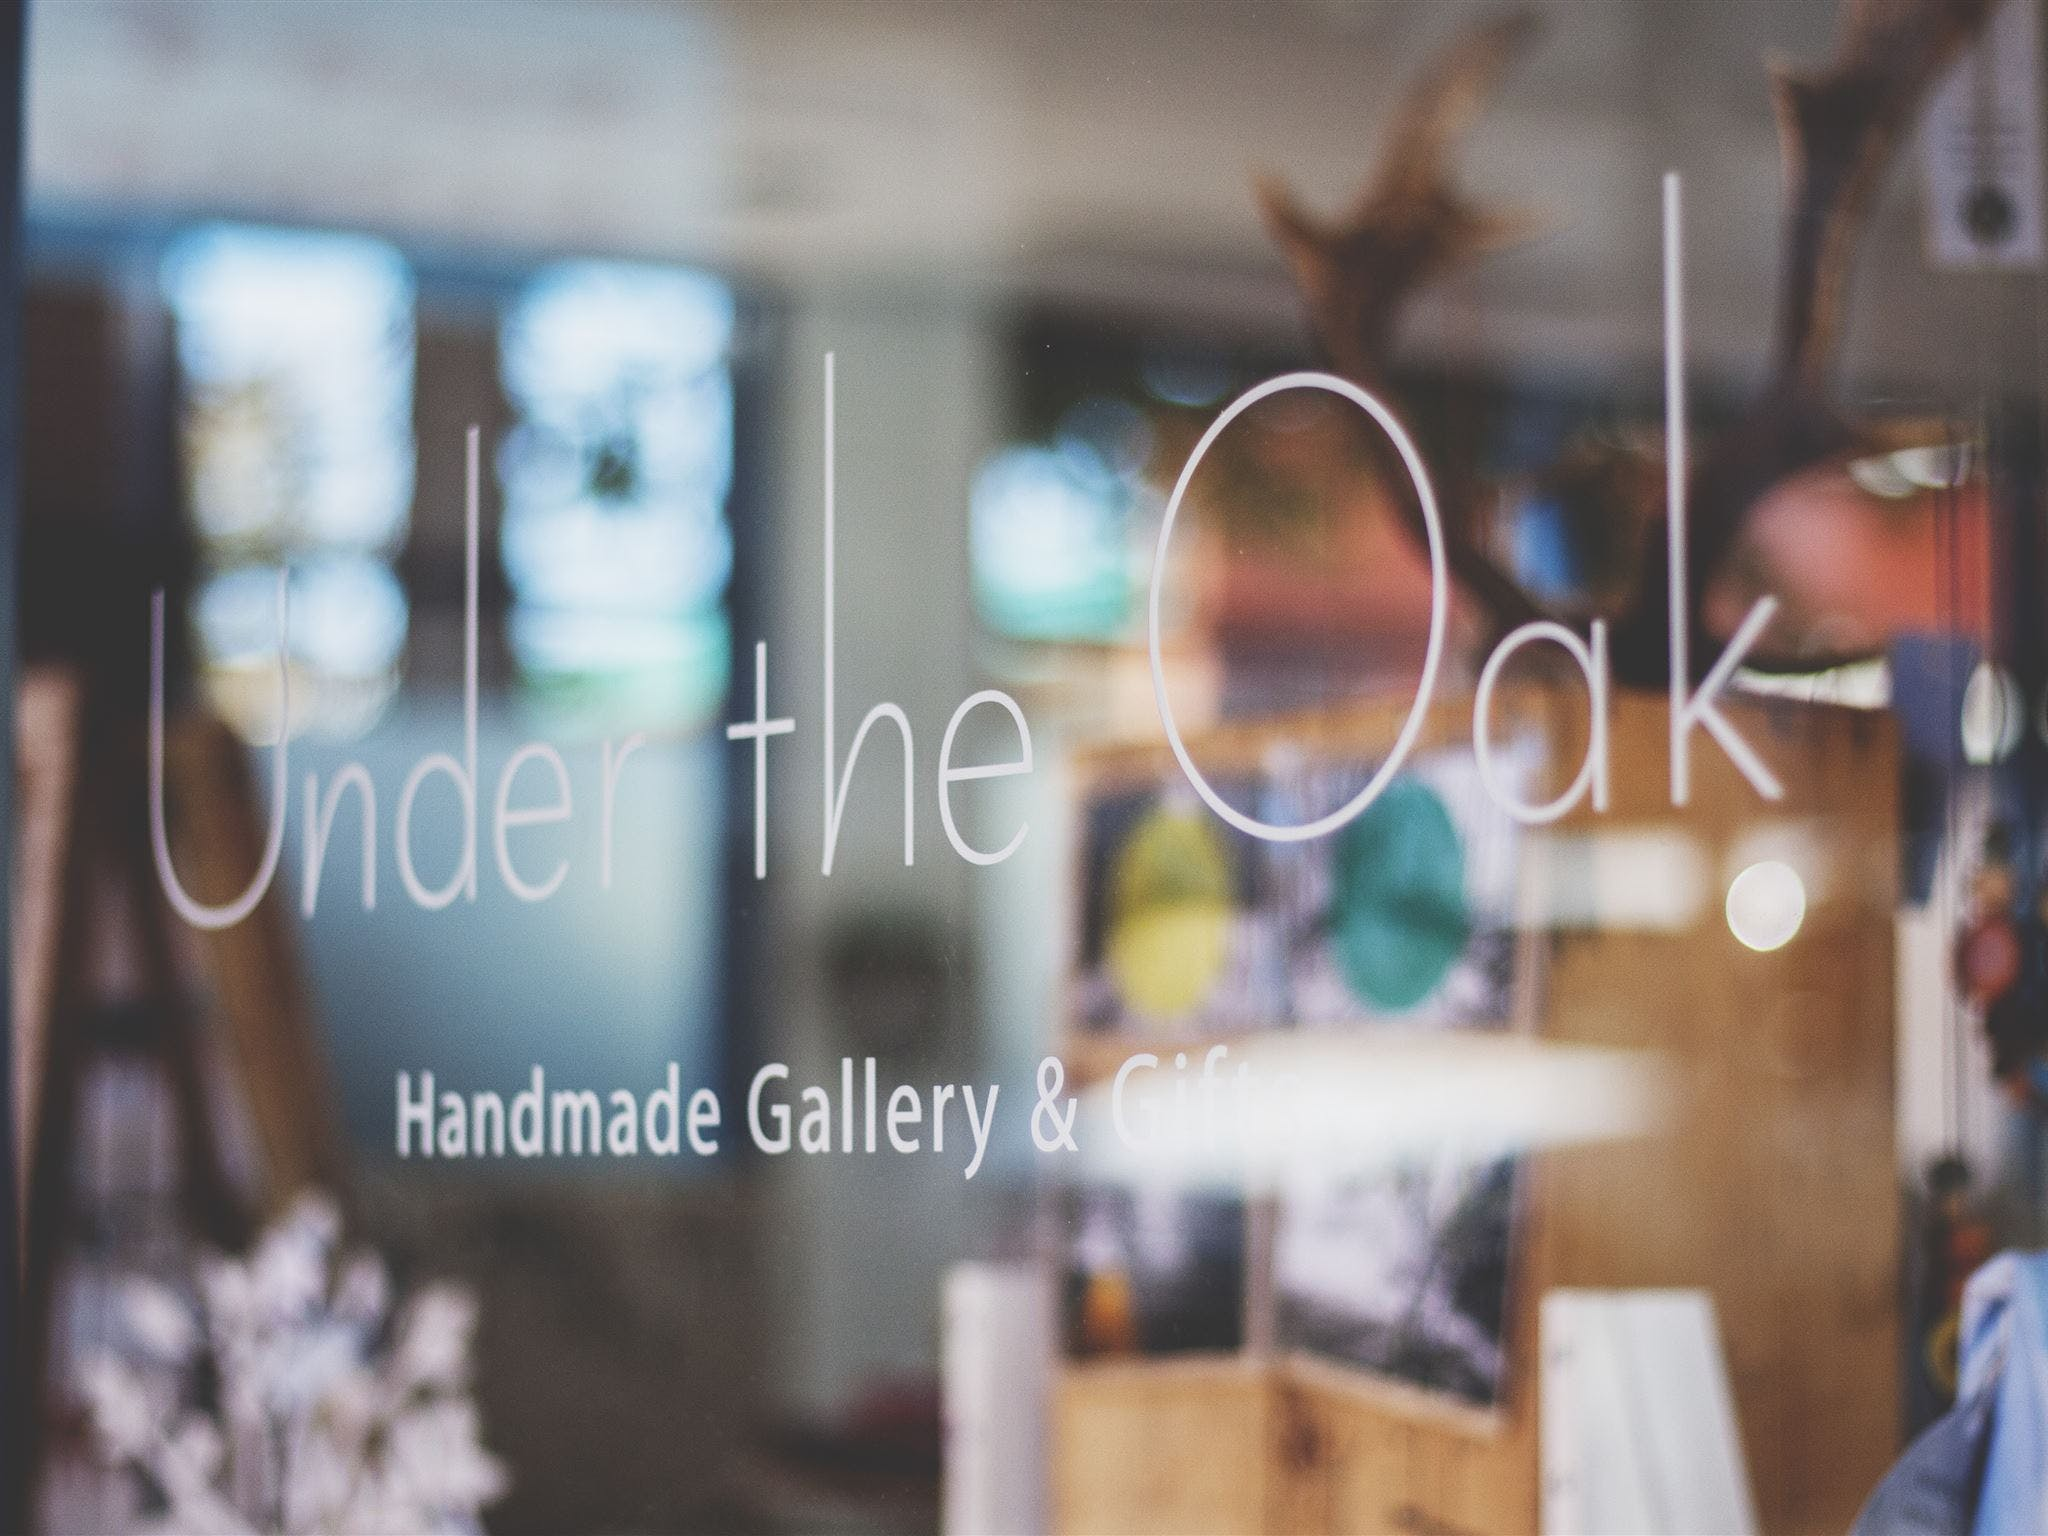 Under The Oak Handmade Gallery and Gifts - Accommodation Batemans Bay